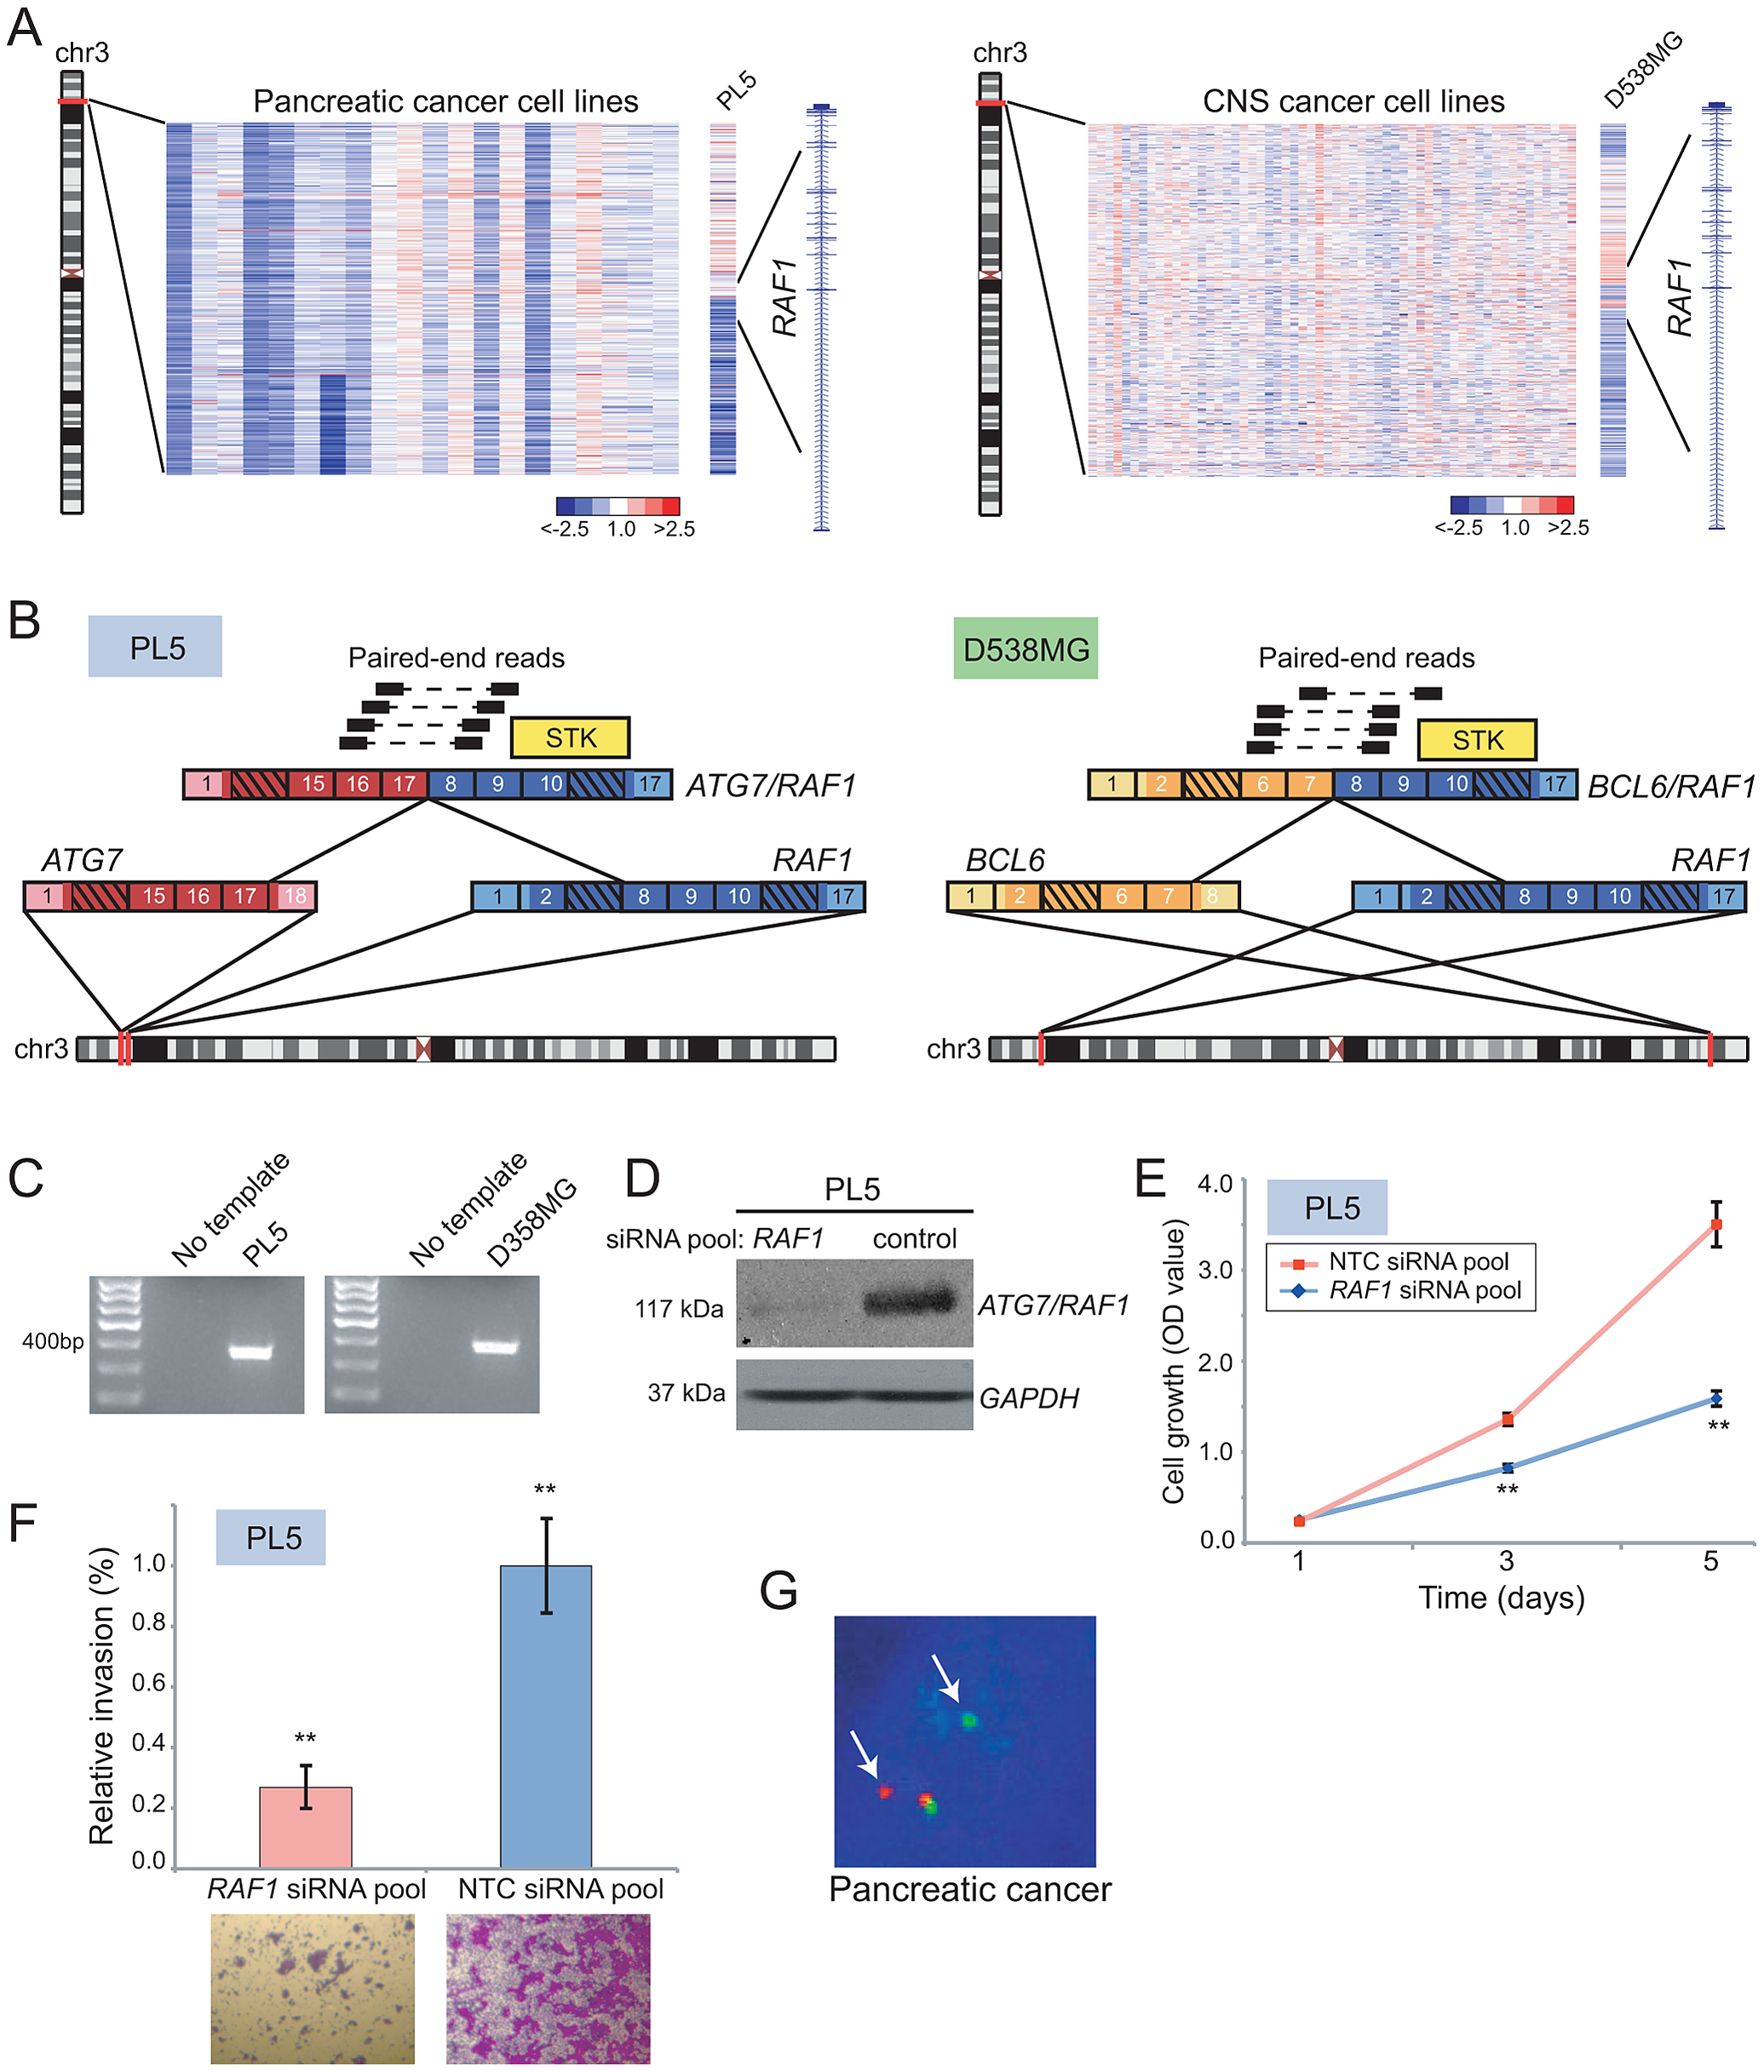 Identification and characterization of novel <i>RAF1</i> gene fusions in pancreatic cancer and anaplastic astrocytoma.